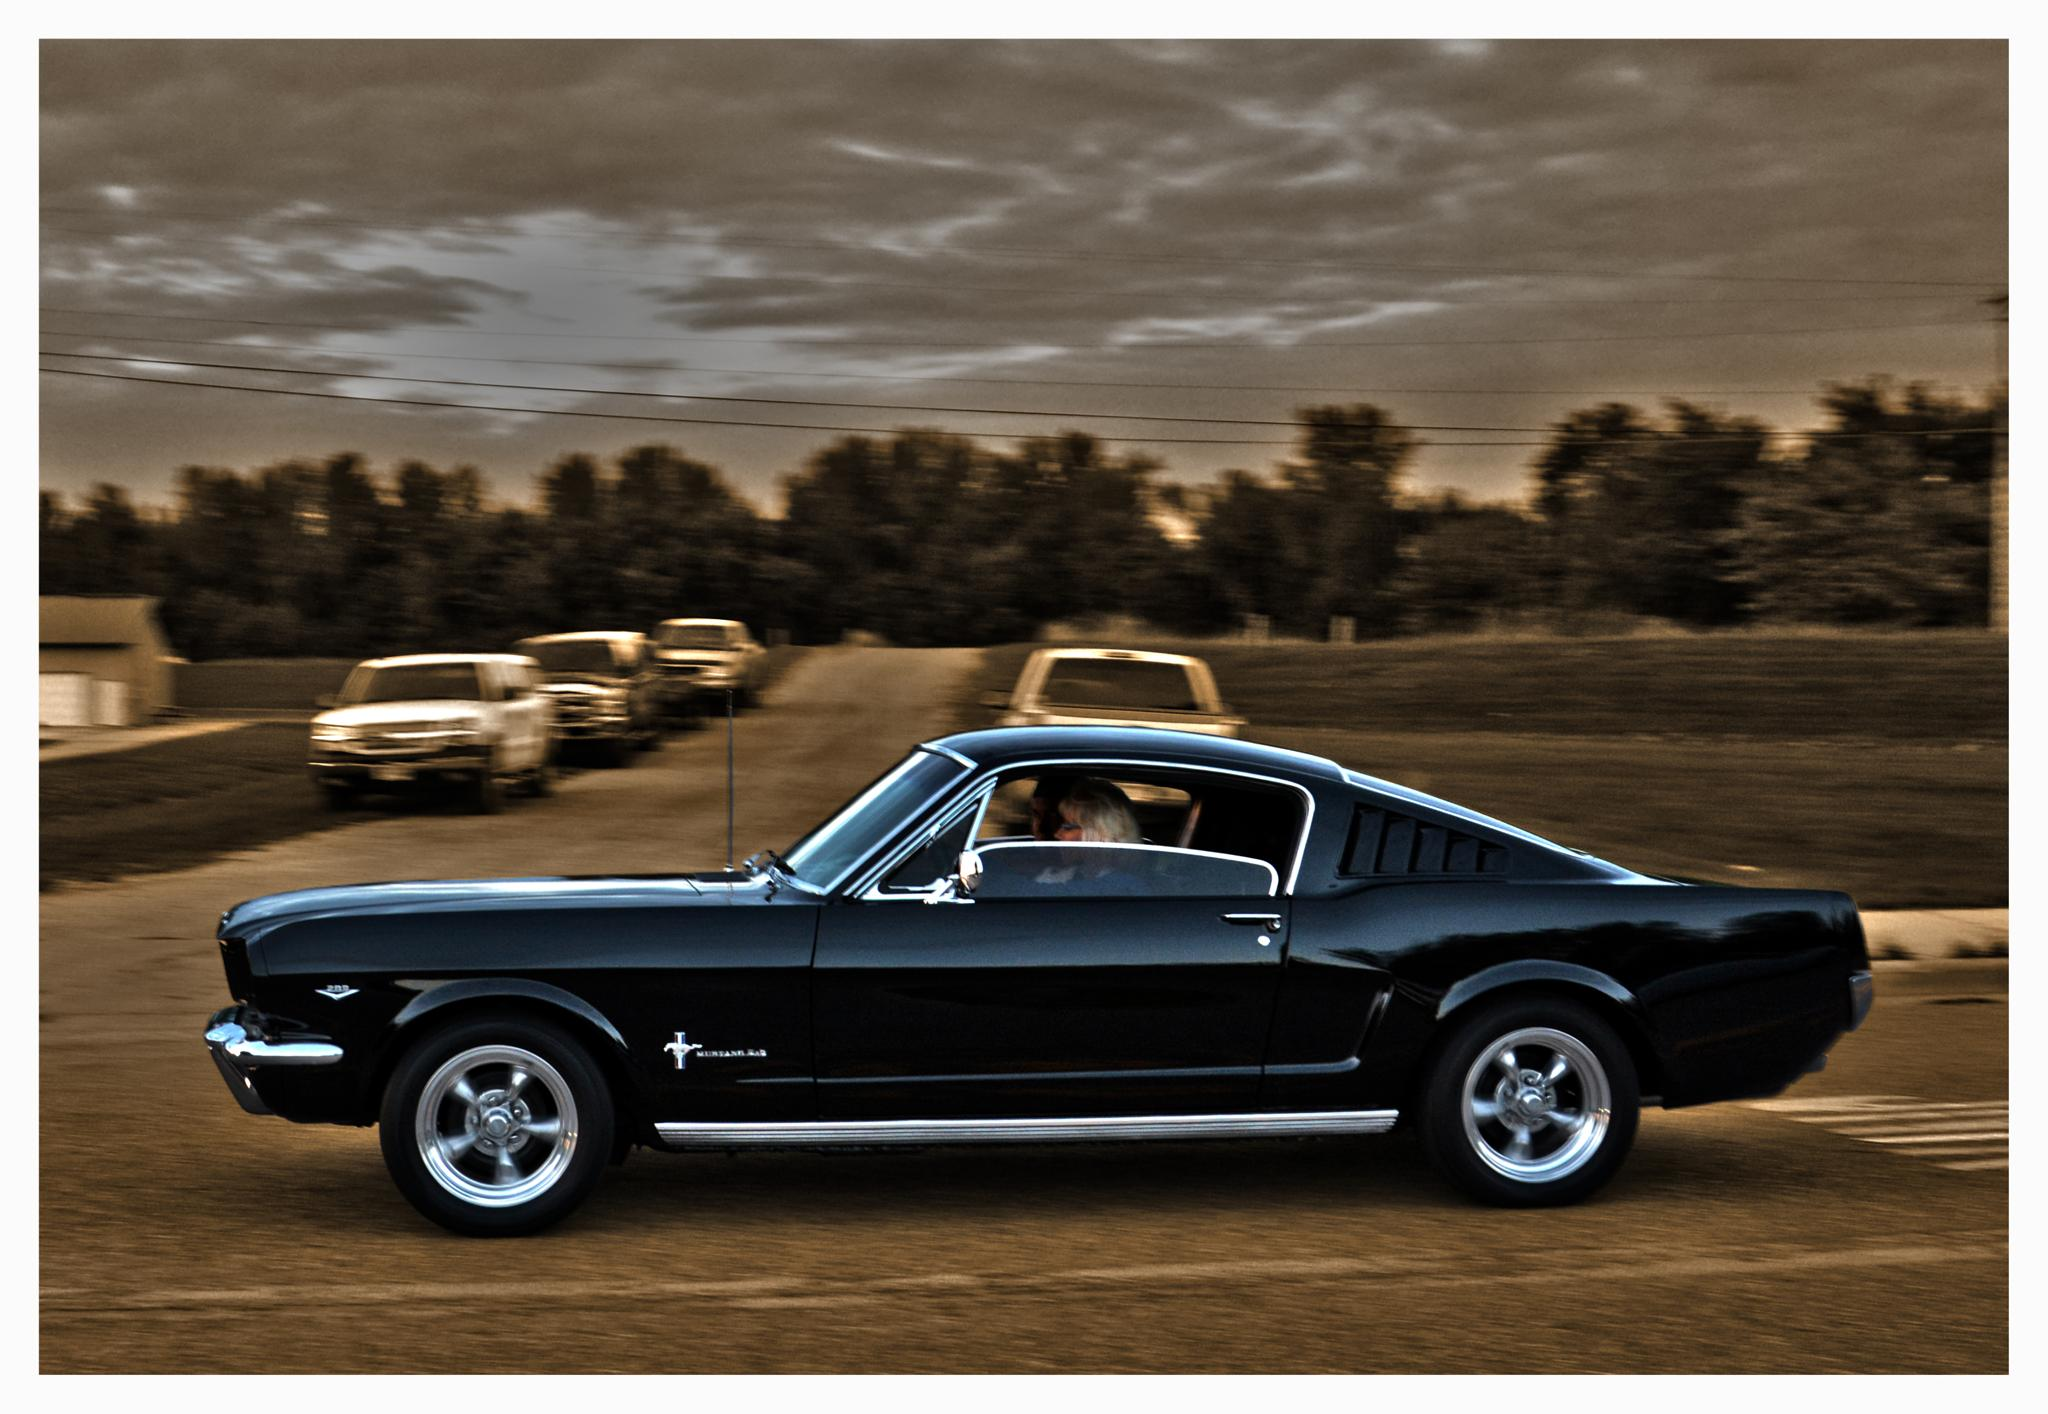 Mustang fastback by Linda Persson